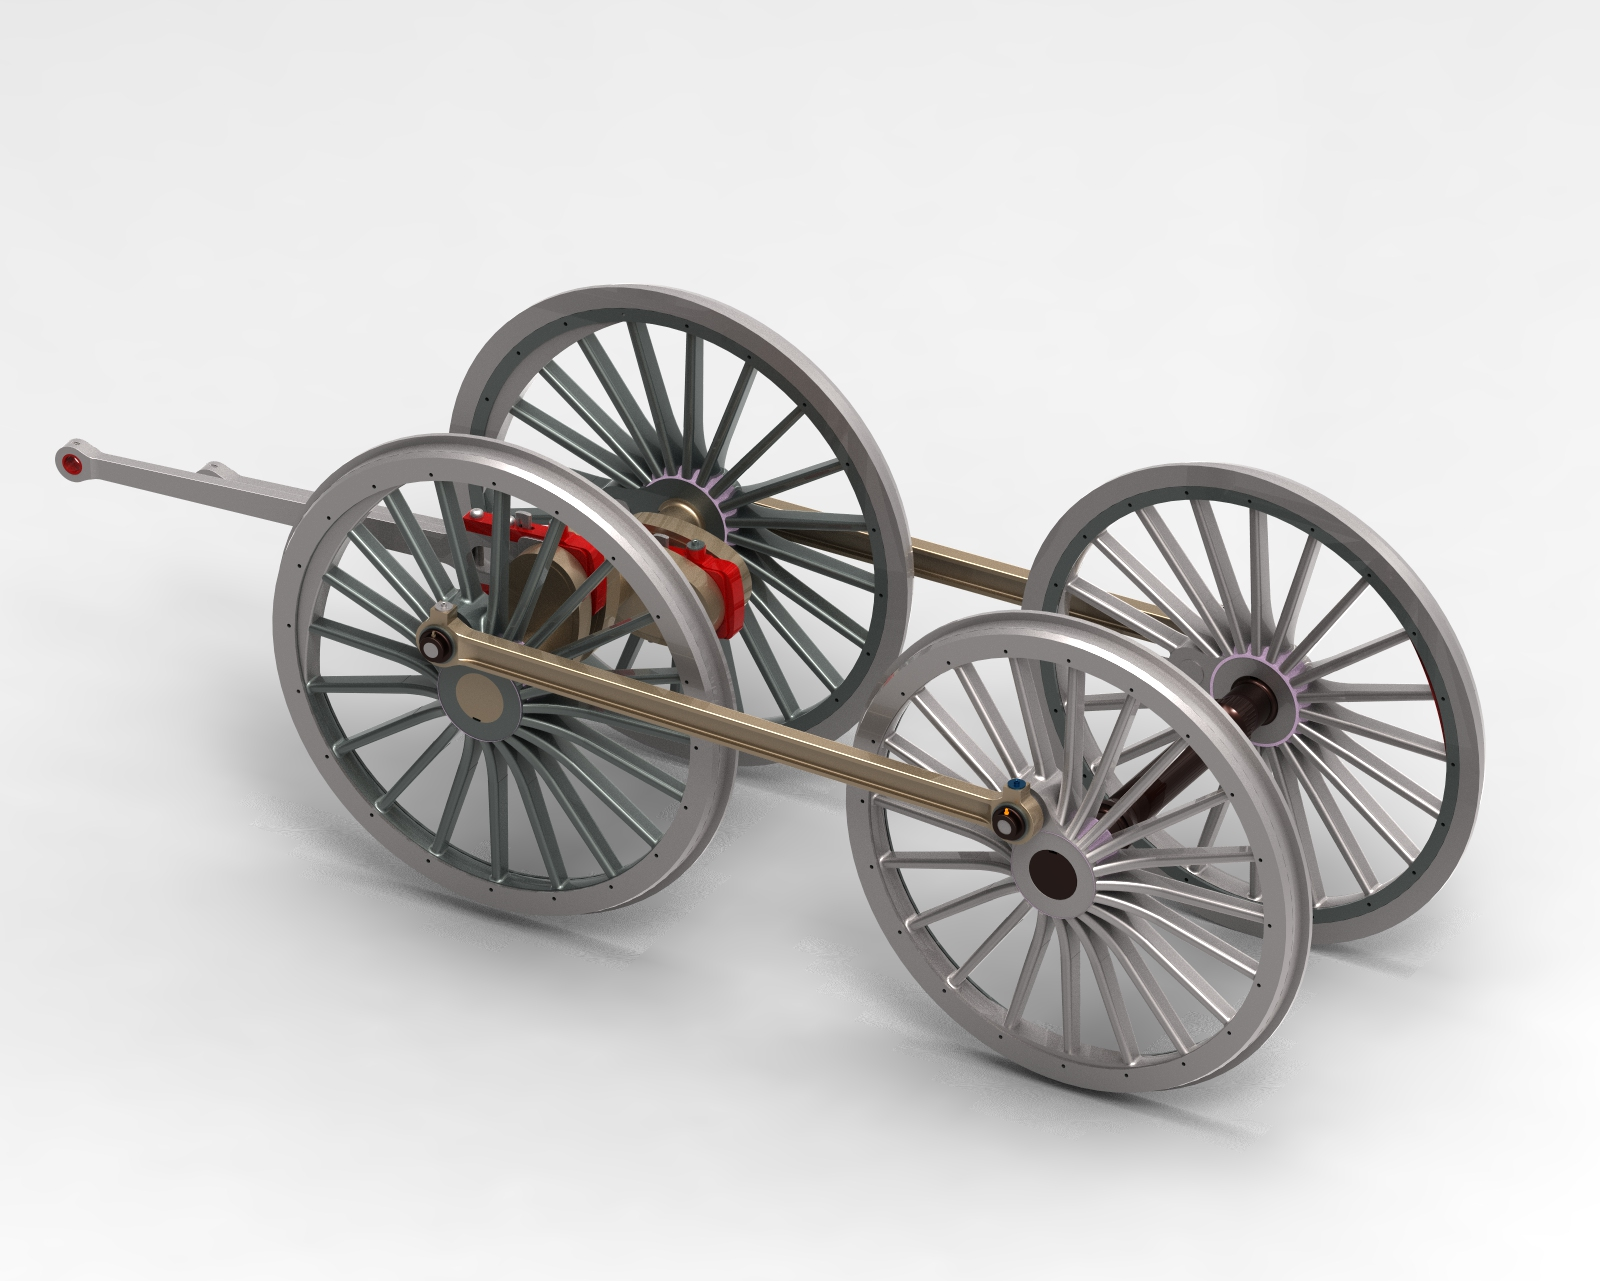 wheels with cranks and con rods